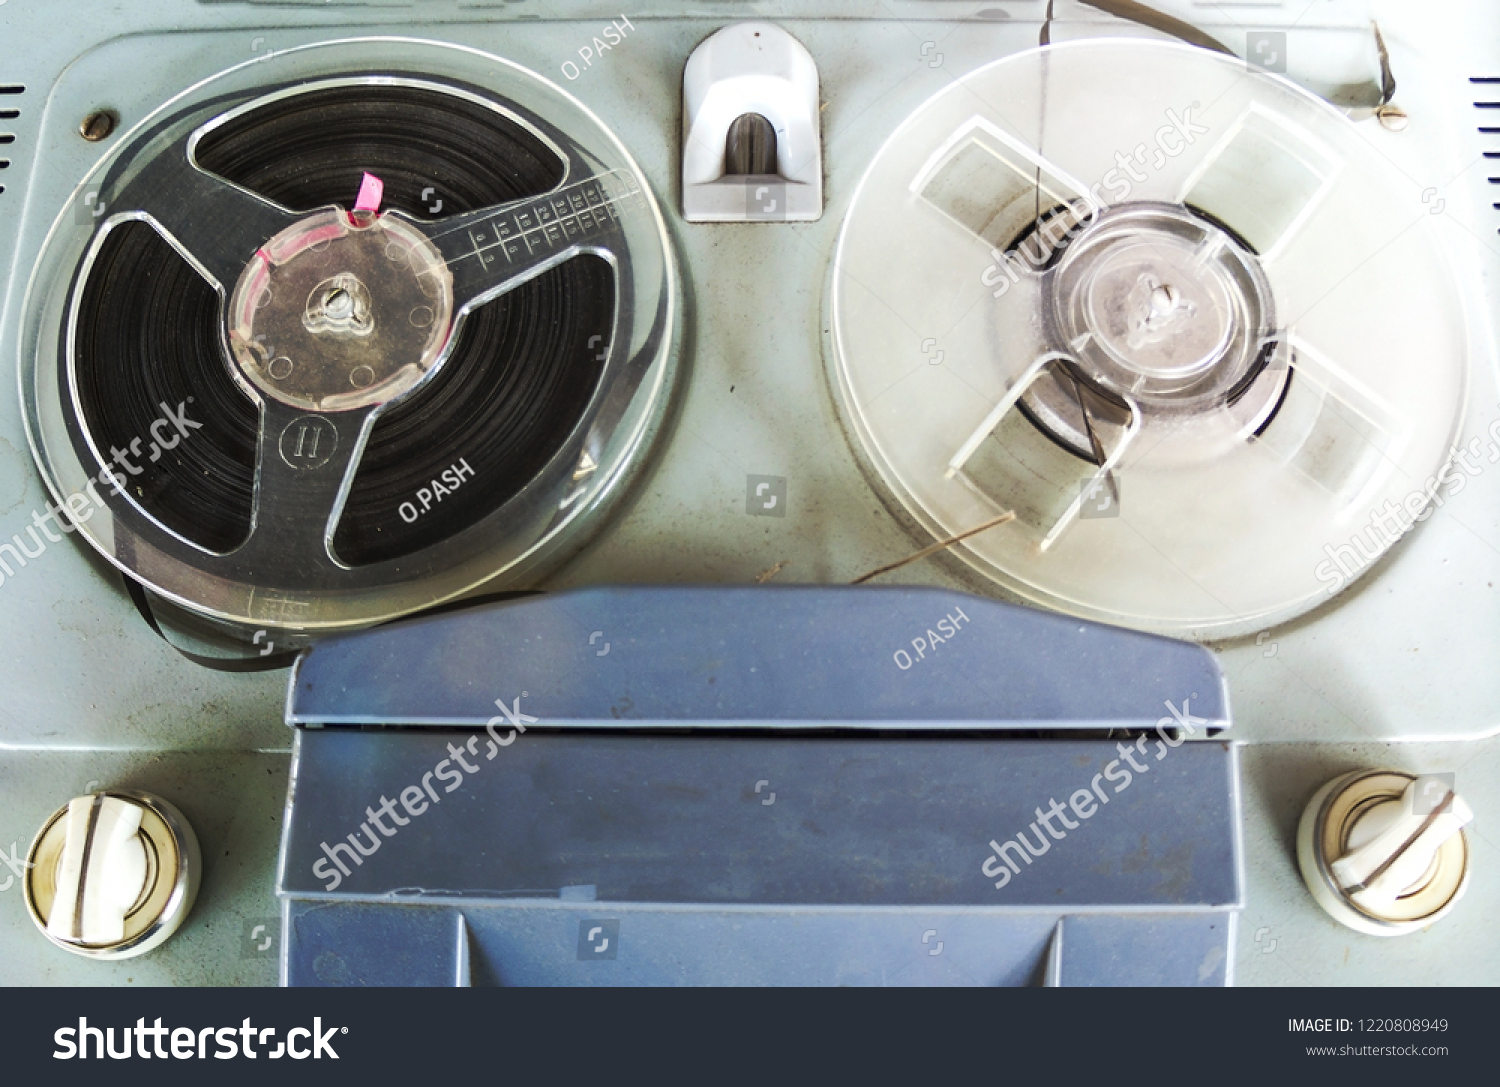 Old vintage player of reels. The antique Reel-to-Reel Tape Recorder without spools close-up #1220808949